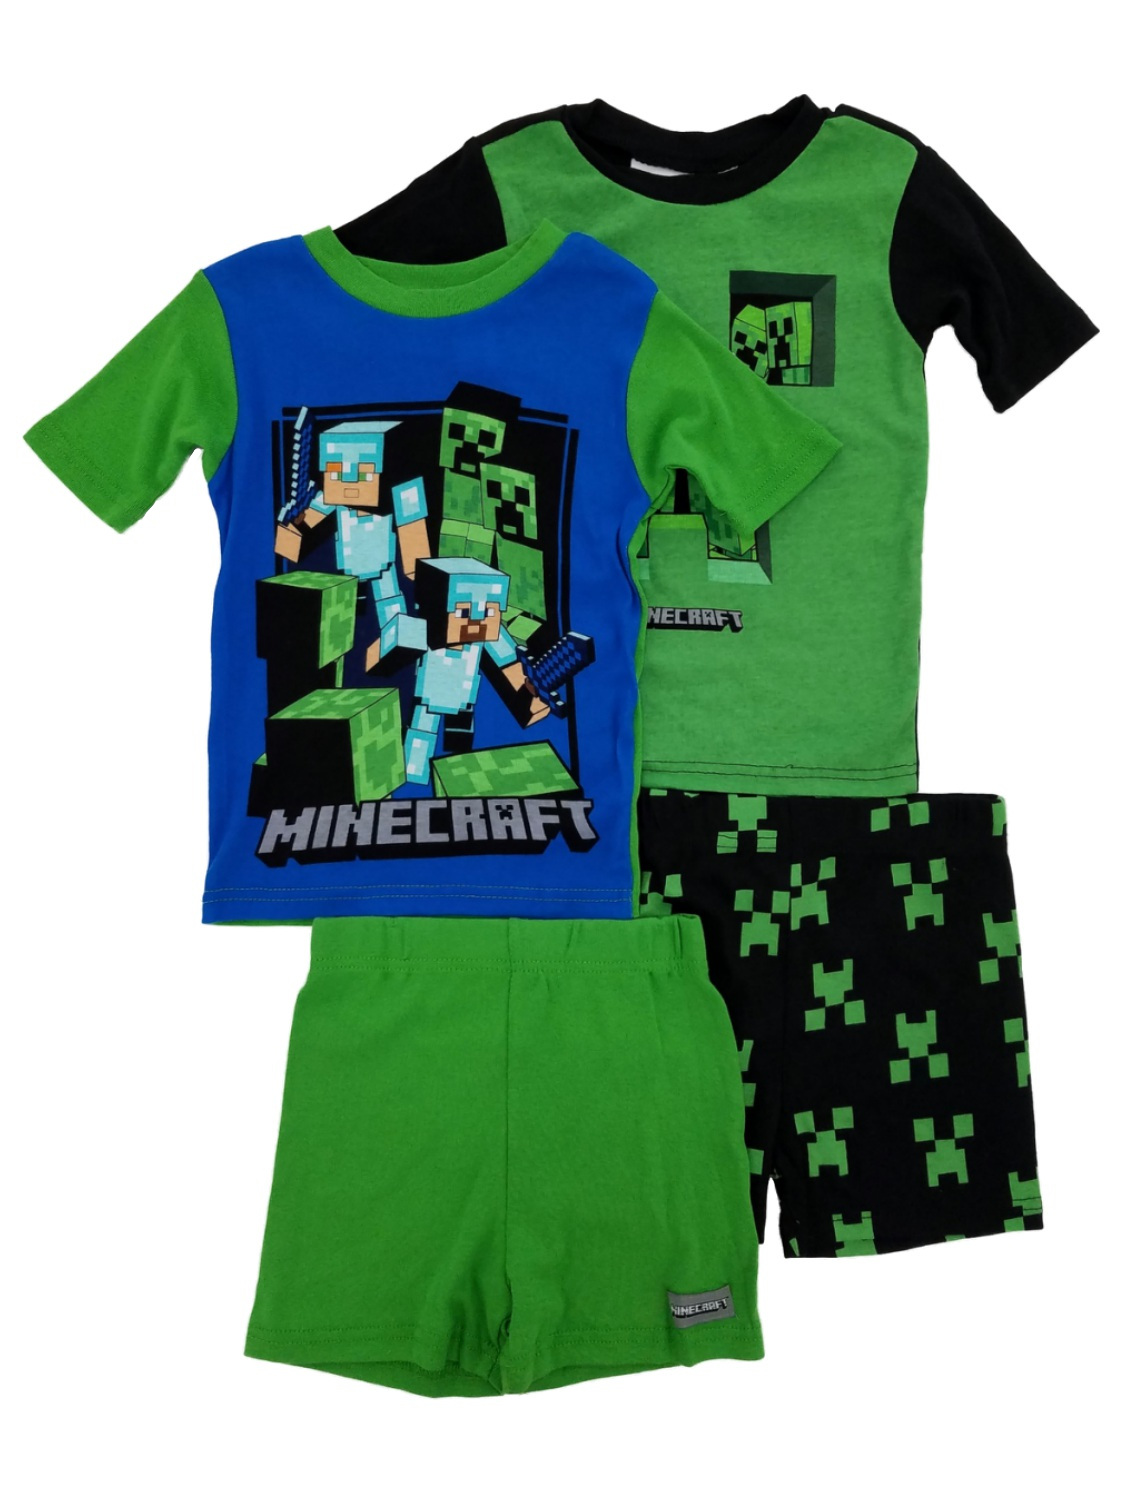 Mojang Minecraft Creeper Boys 4-Piece T-Shirts & Shorts Sleepwear Pajama Sets 6